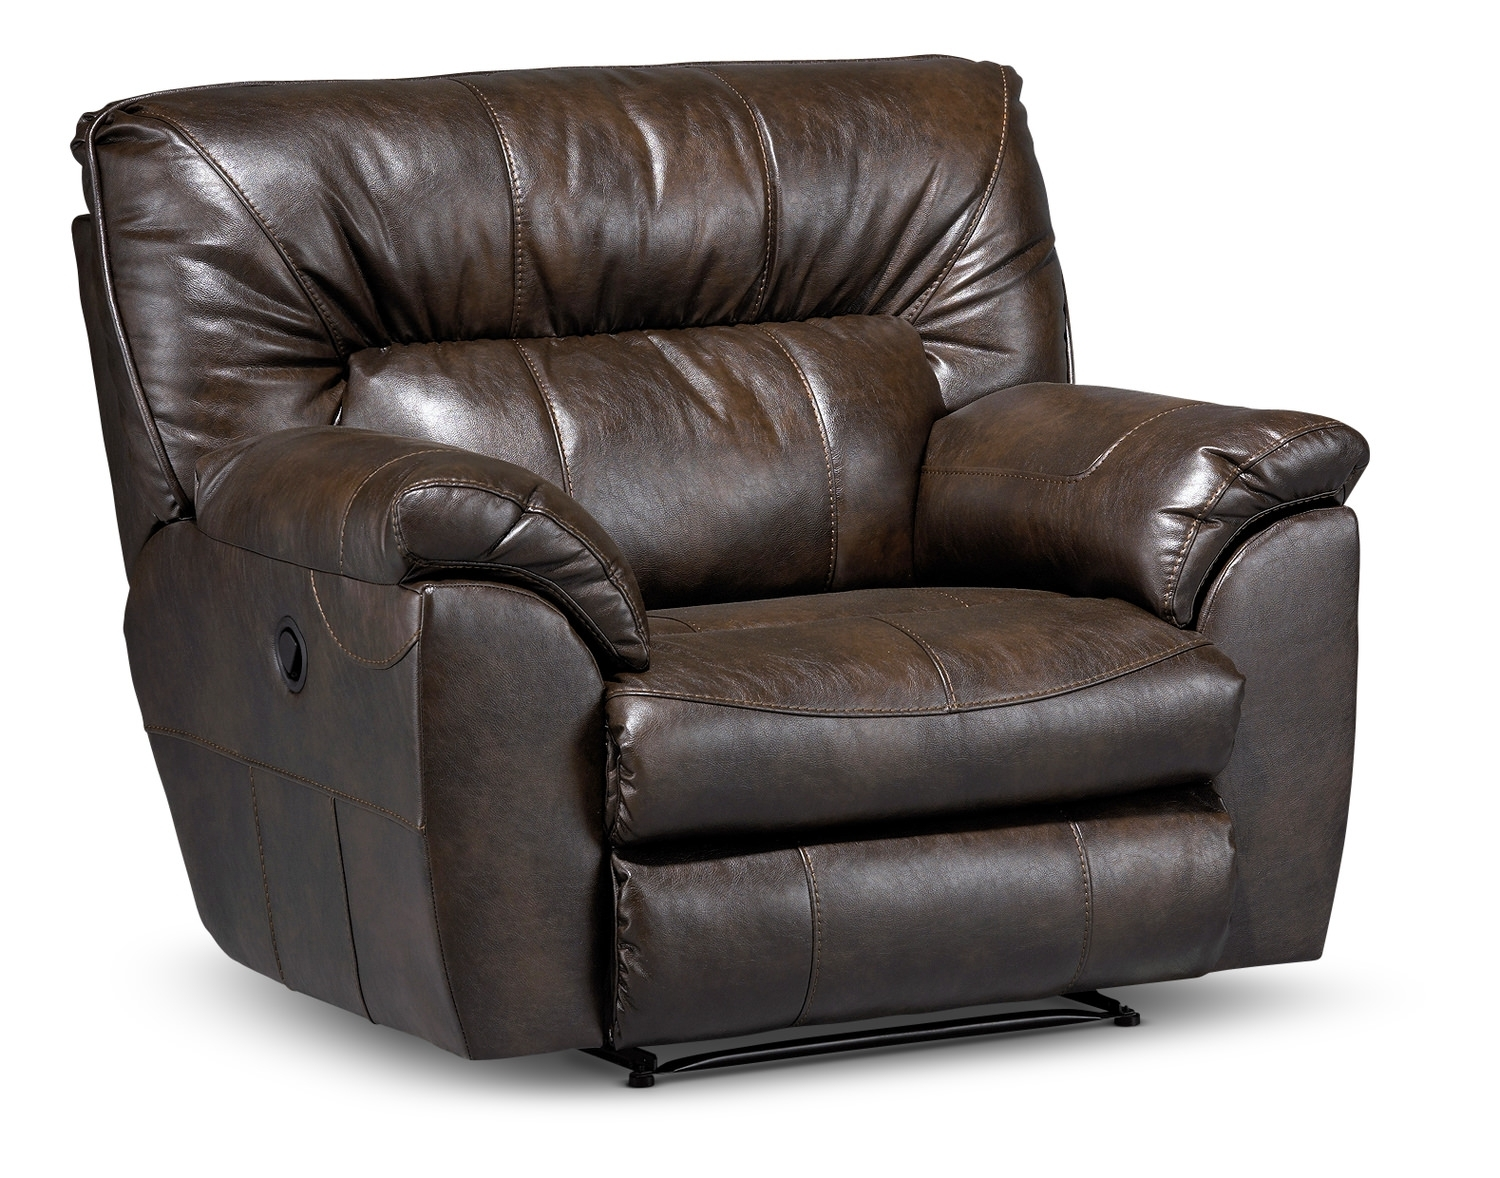 Recliners – Leather, Rocker & Swivel – Hom Furniture In Travis Dk Grey Leather 6 Piece Power Reclining Sectionals With Power Headrest & Usb (Image 16 of 25)